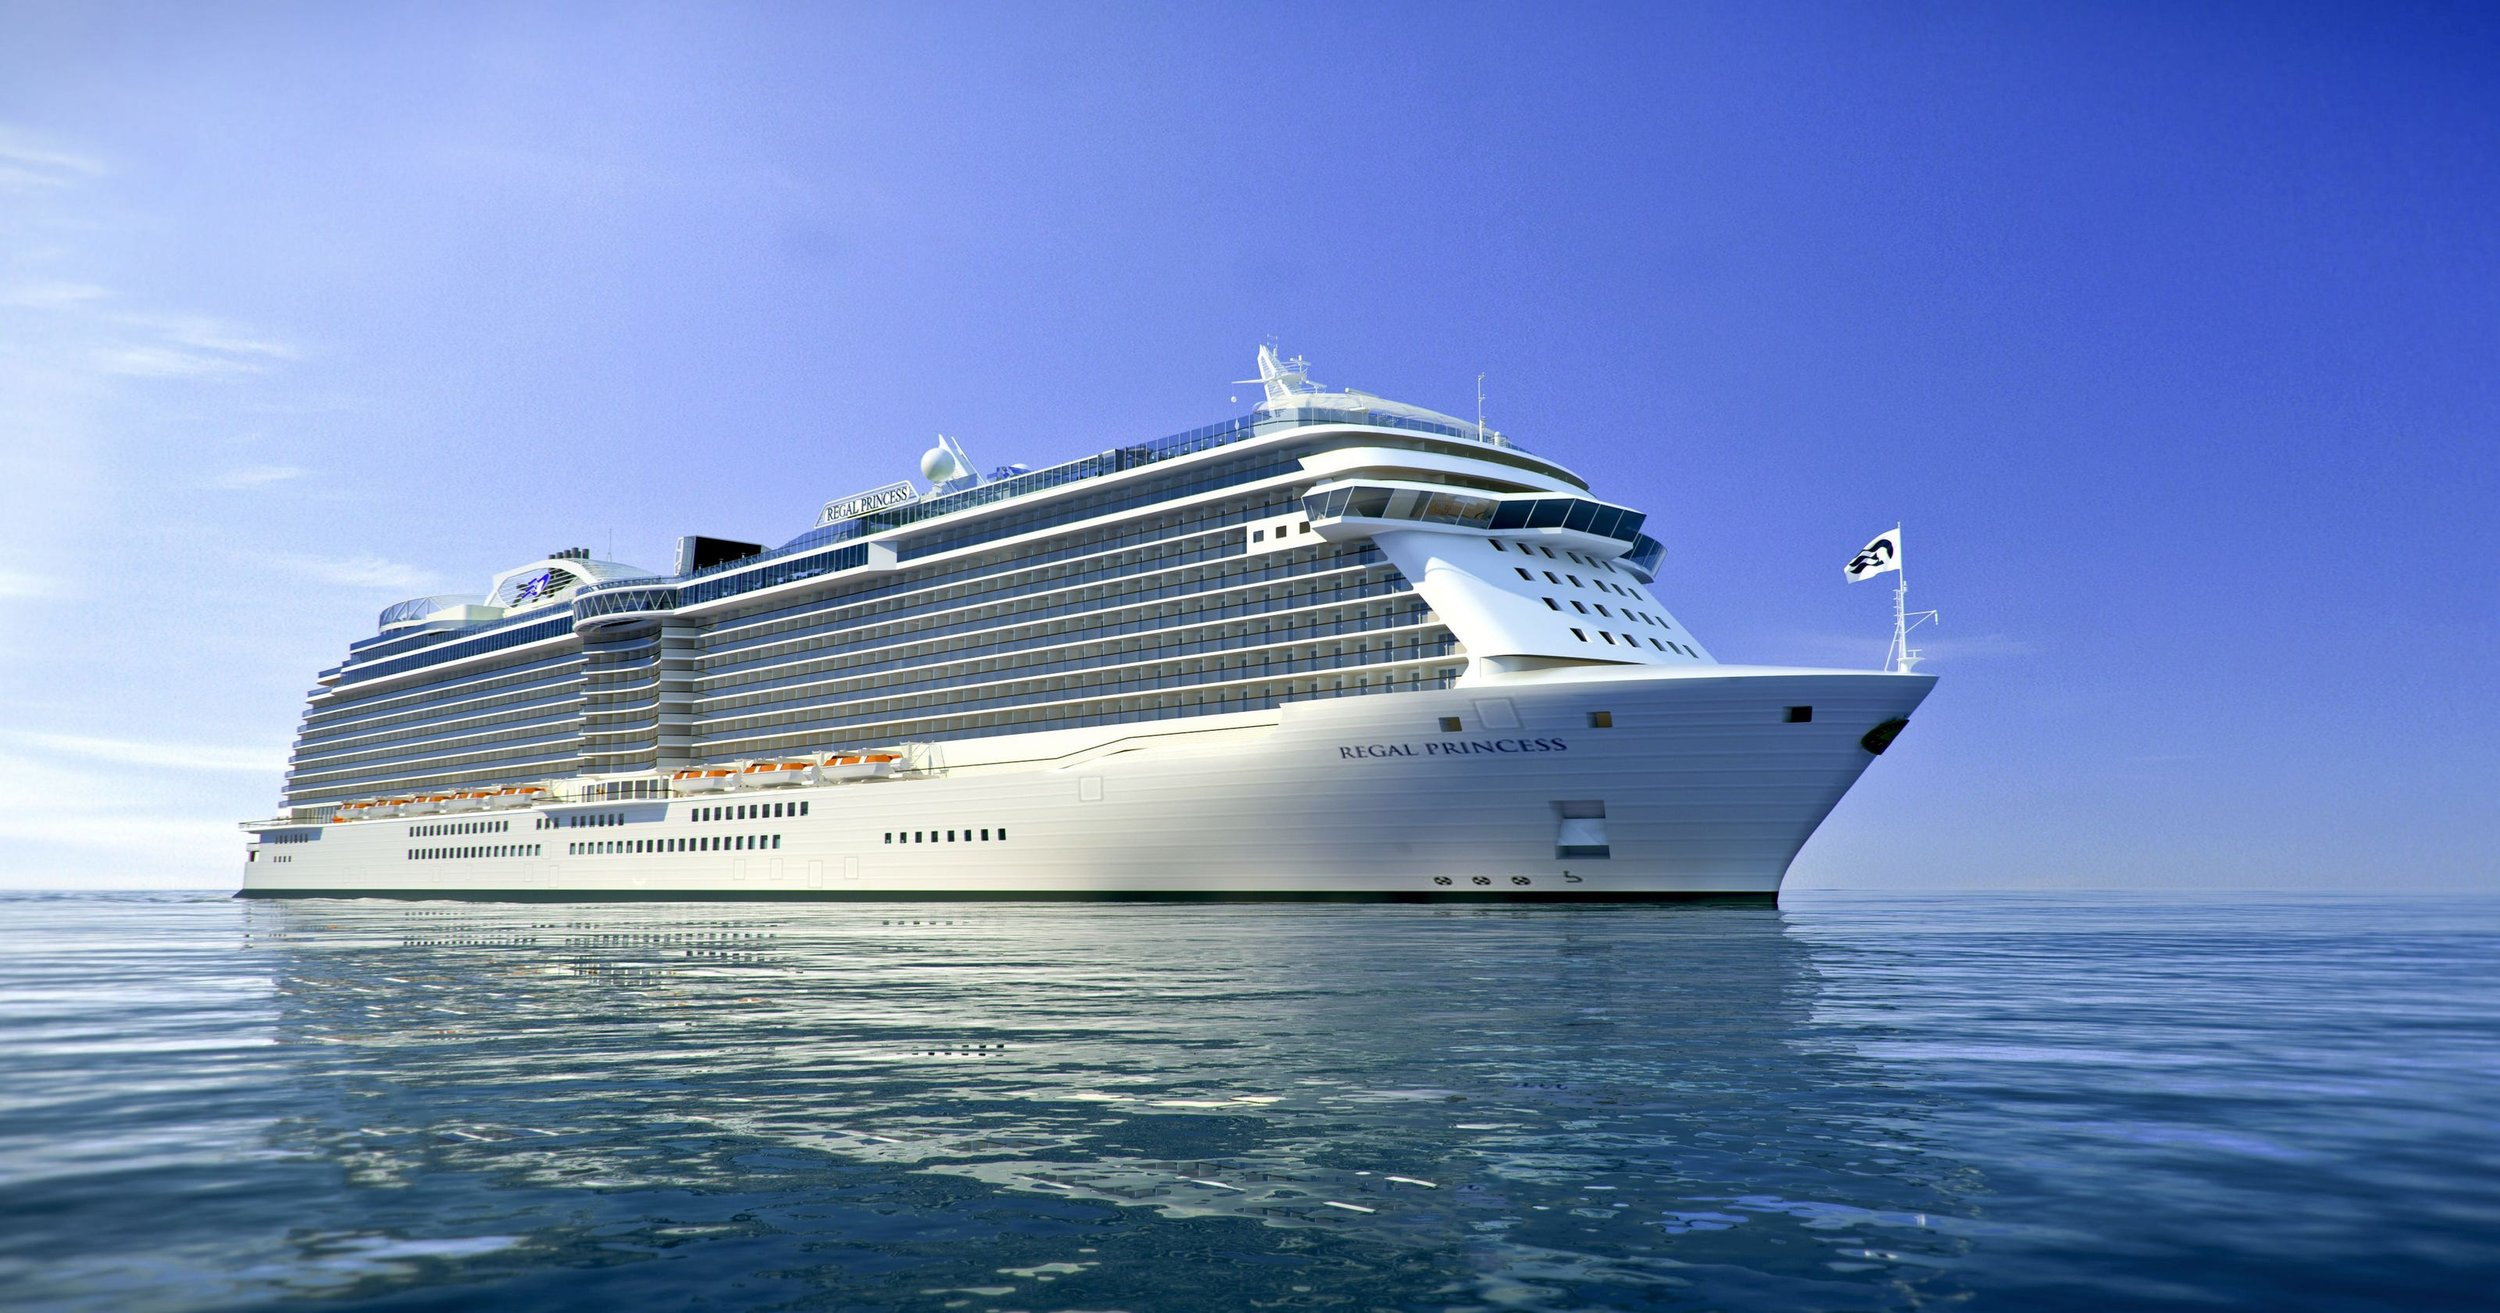 Cruise Line: Royal Princess - 5 Night Cabo San Lucas Getaway   Departing from: San Pedro (Los Angeles), California  Ports of Call: Cabo San Lucas, Mexico  Sailing Dates: Departing September 29, 2019  Starting From: $629